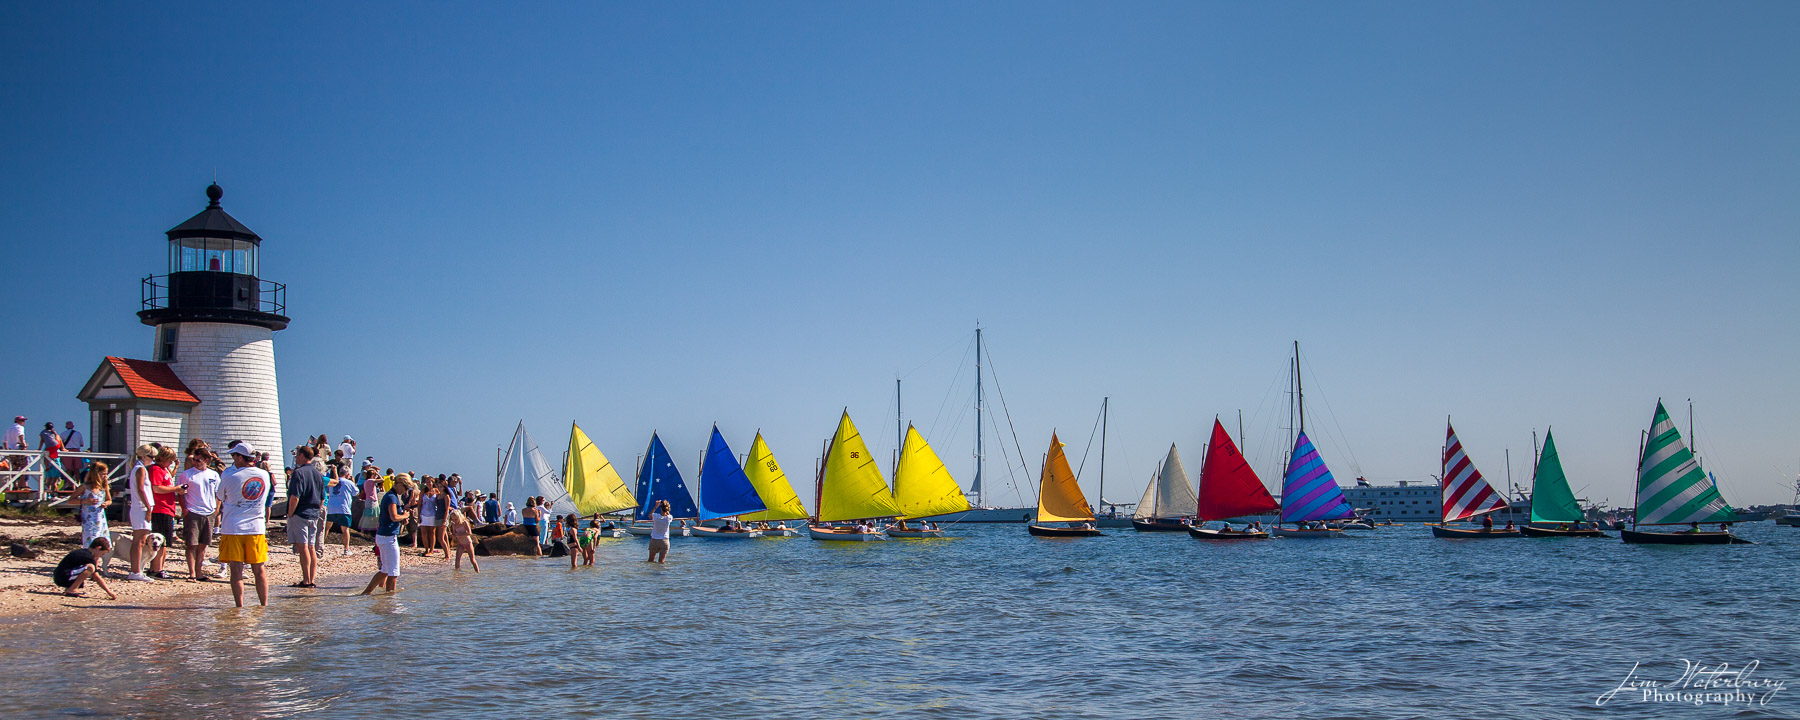 Parade of the Rainbow Fleet, with their colorful sails, around Brant Point Lighthouse, Nantucket, during Race Week.